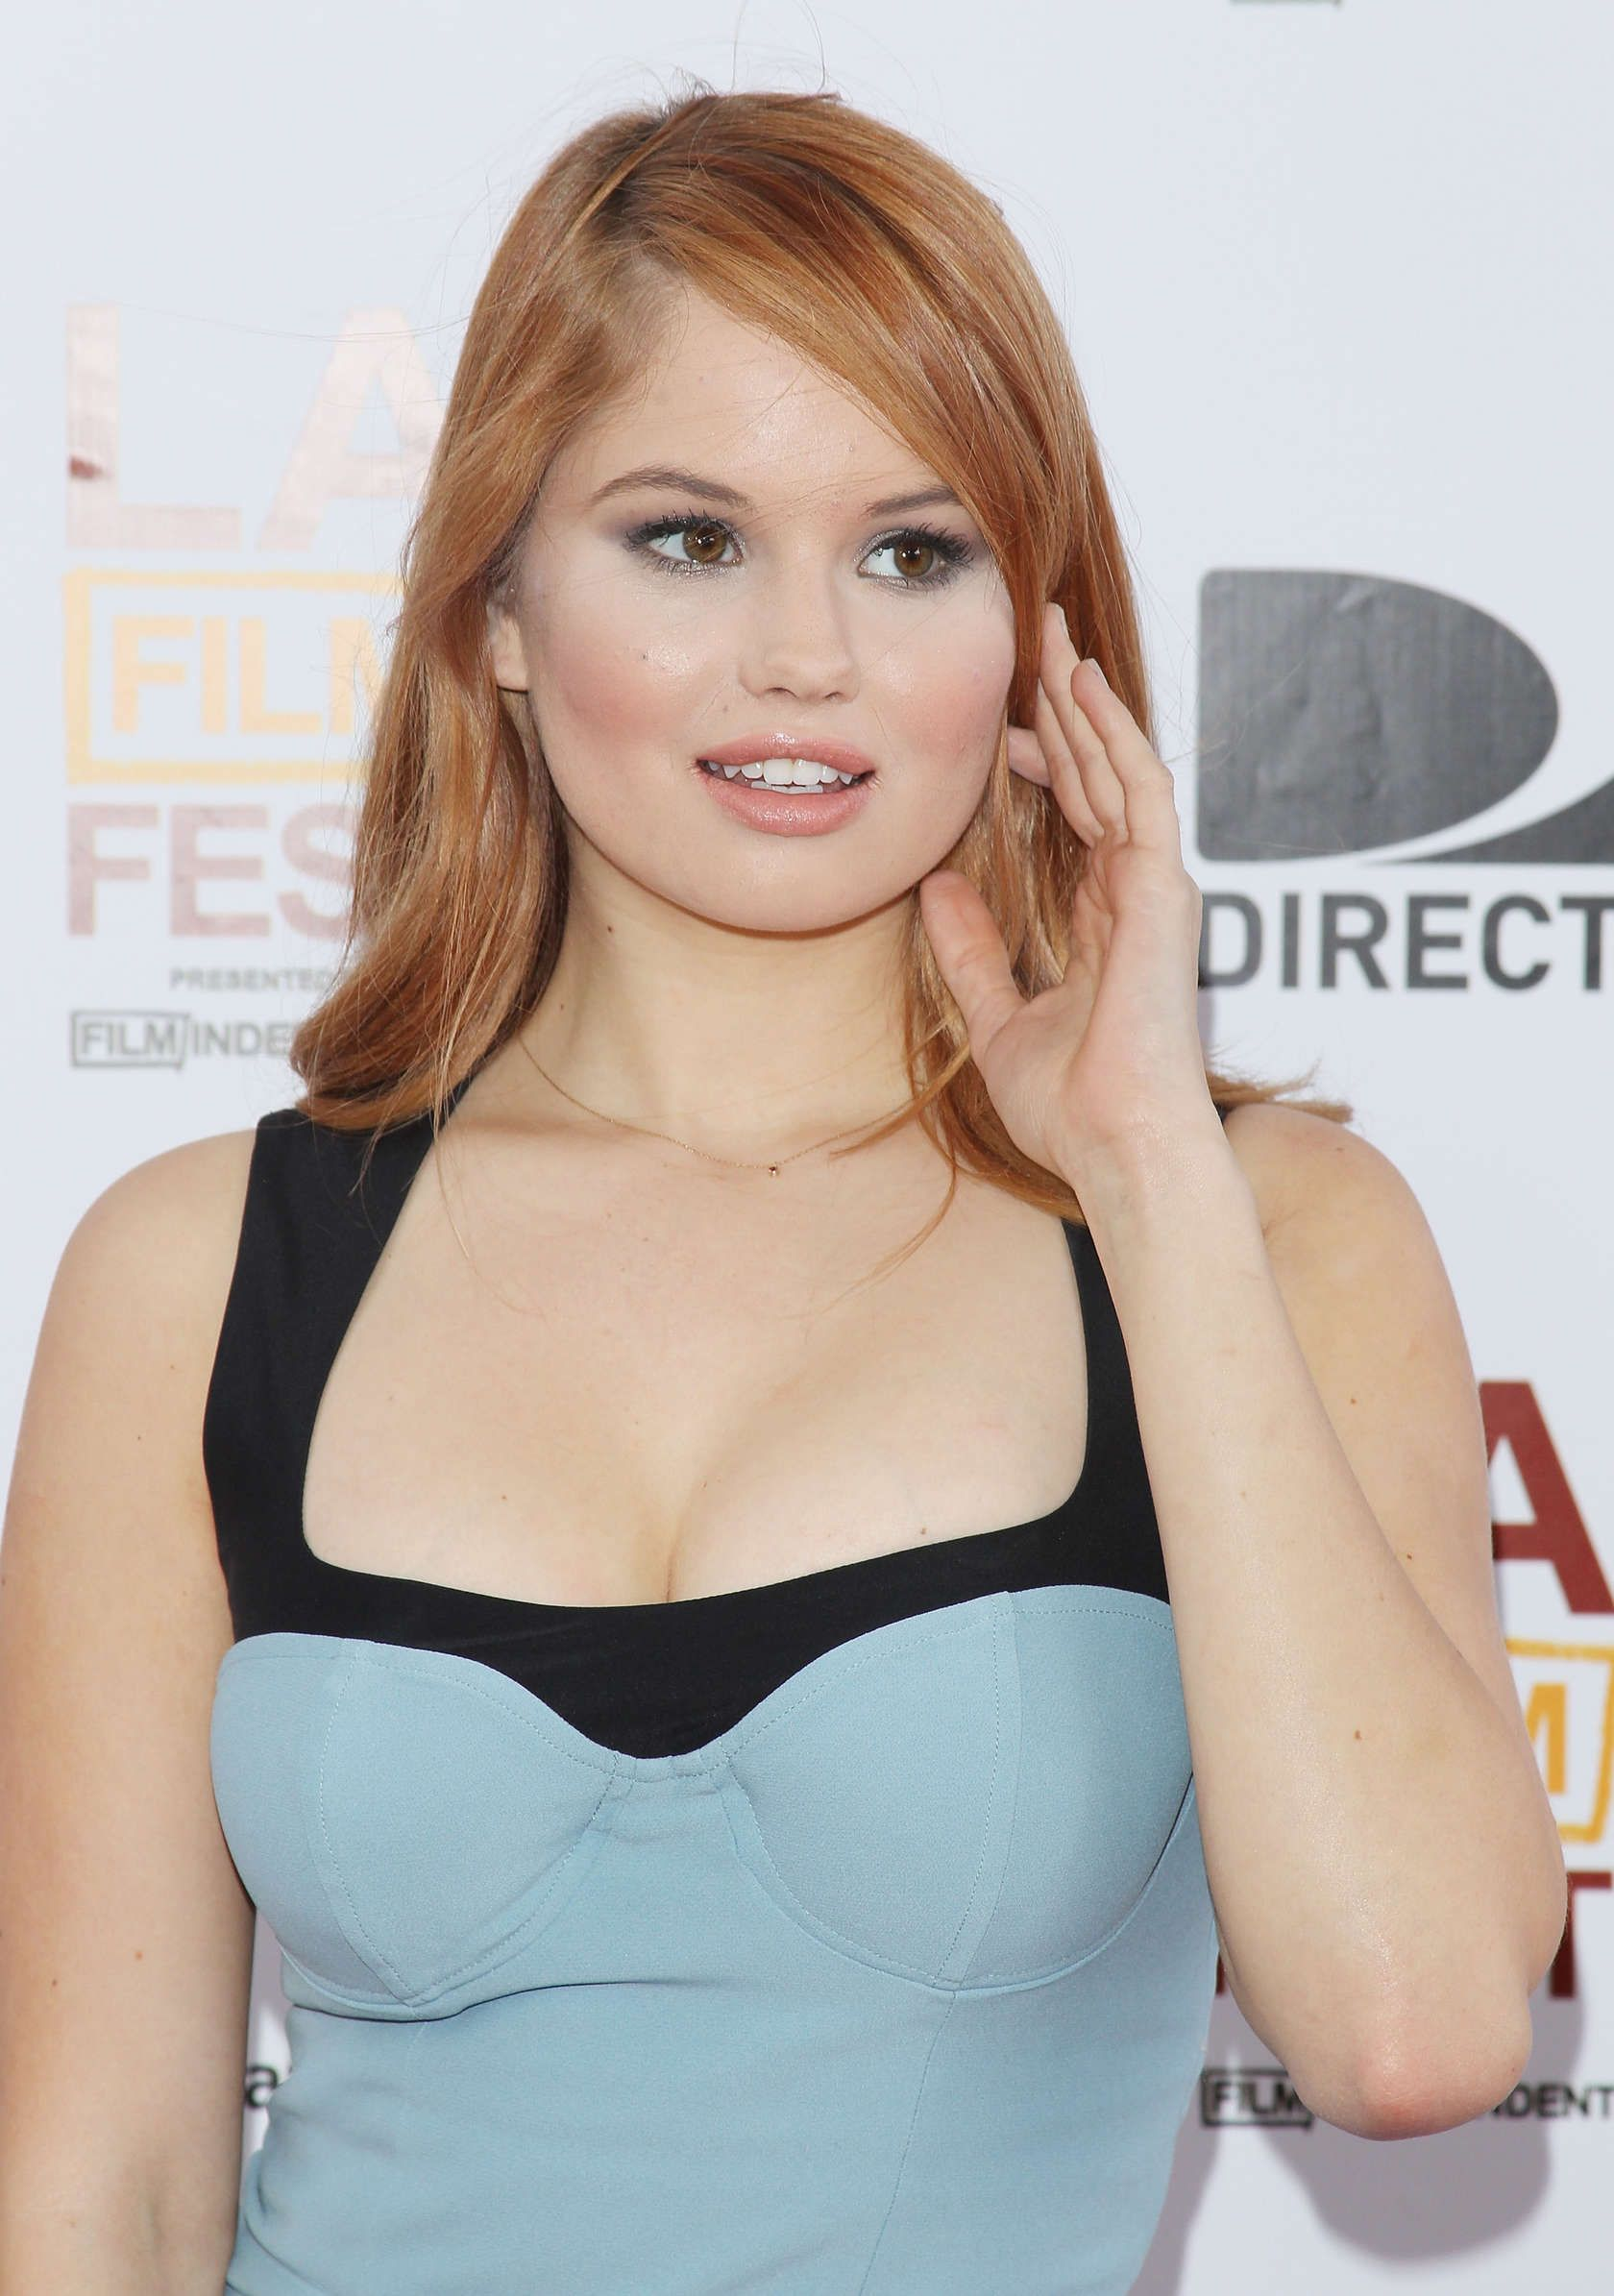 debby ryan selena gomezdebby ryan 2017, debby ryan 2016, debby ryan vk, debby ryan песни, debby ryan gif, debby ryan open eyes, debby ryan blonde hair, debby ryan films, debby ryan selena gomez, debby ryan hey jessie, debby ryan sweater weather, debby ryan age, debby ryan vine, debby ryan nails, debby ryan filmography, debby ryan hakuna matata, debby ryan 16 wishes, debby ryan twitter pack, debby ryan style, debby ryan best year lyrics